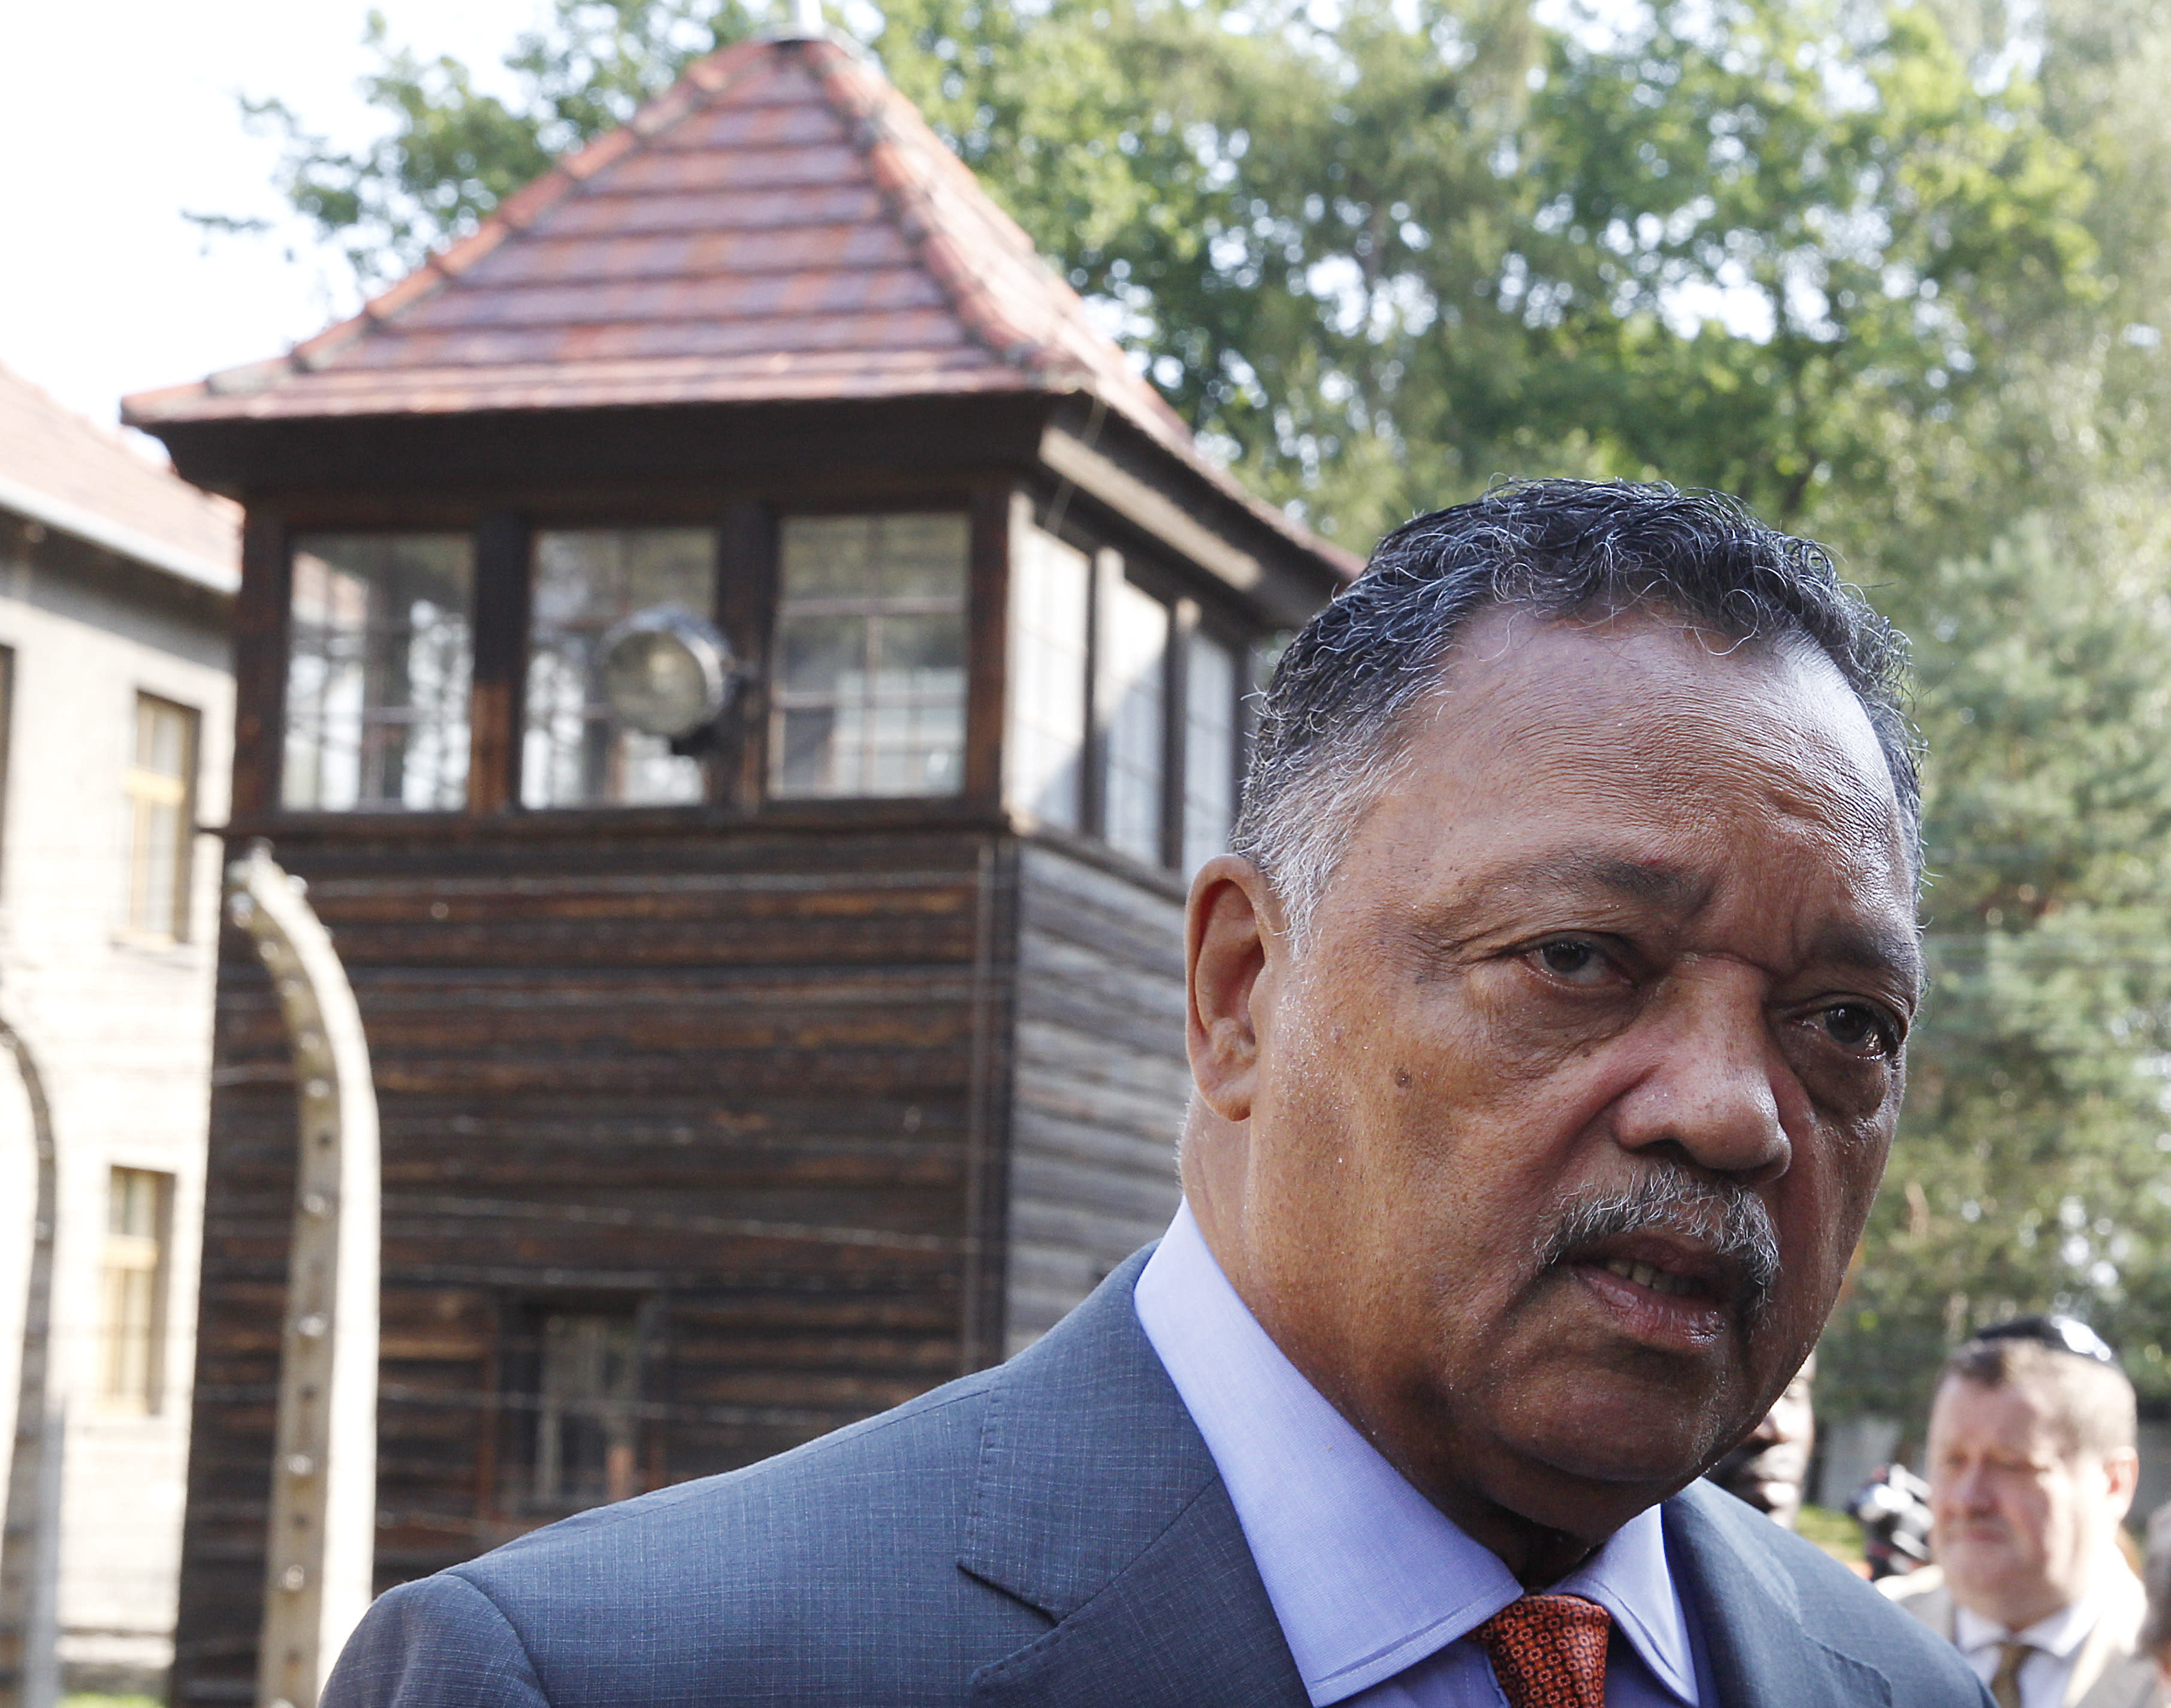 The American civil rights activist Rev. Jesse Jackson visits the former Nazi death camp of Auschwitz-Birkenau in Oswiecim, Poland on Friday, Aug. 2, 2019. Rev. Jesse Jackson gathered Friday with survivors at the former Nazi death camp of Auschwitz-Birkenau to commemorate an often forgotten genocide — that of the Roma people. In addition to the 6 million Jews killed in camps such as Auschwitz, the Nazis killed other minorities during World War II, including between 250,000 and 500,000 Roma and Sinti. (AP Photo/Czarek Sokolowski)